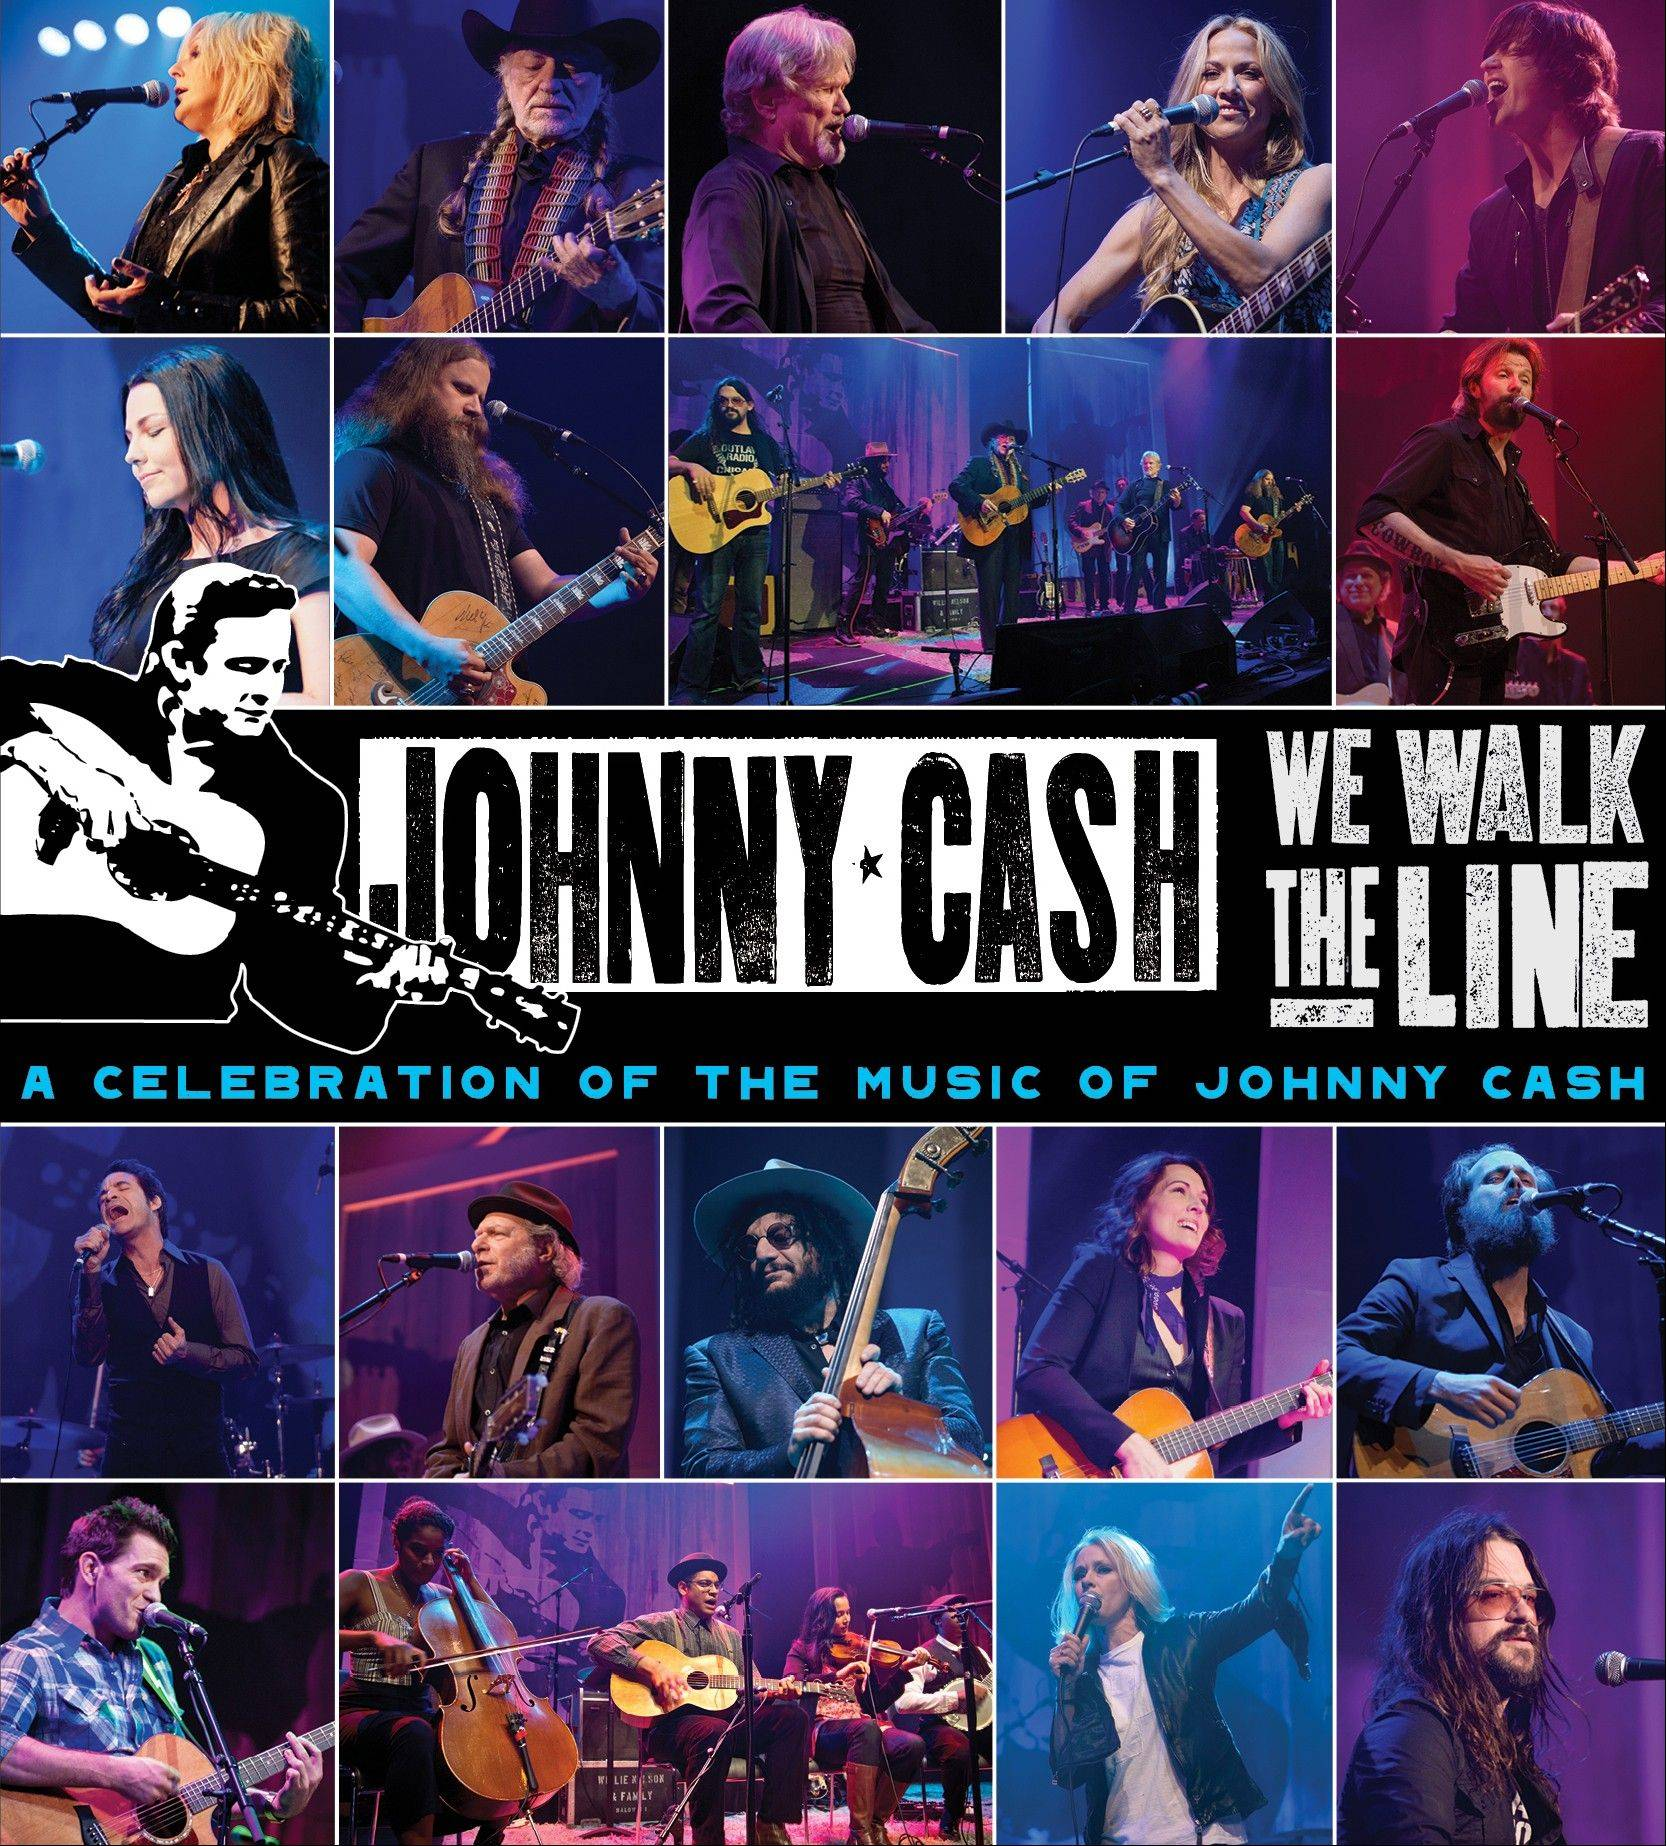 """We Walk the Line: A Celebration of the Music of Johnny Cash"" is a tribute to the late Johnny Cash."